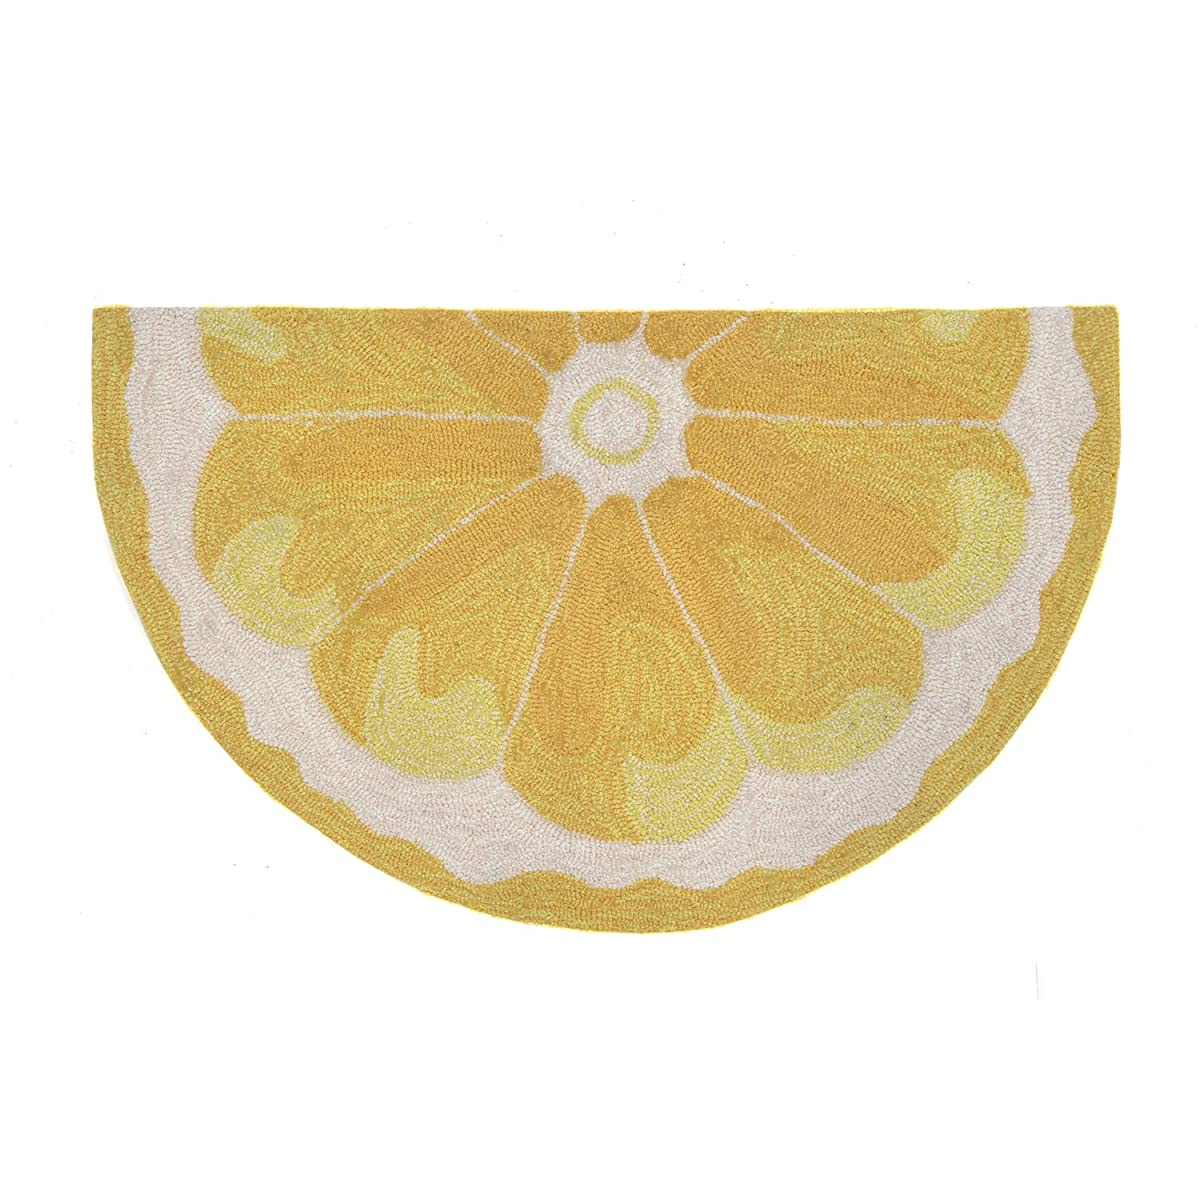 "Liora Manne FT1H2A54209 Whimsy 1/2"" Round Sour Rug, Indoor/Outdoor, 24"" x 36"", Yellow"